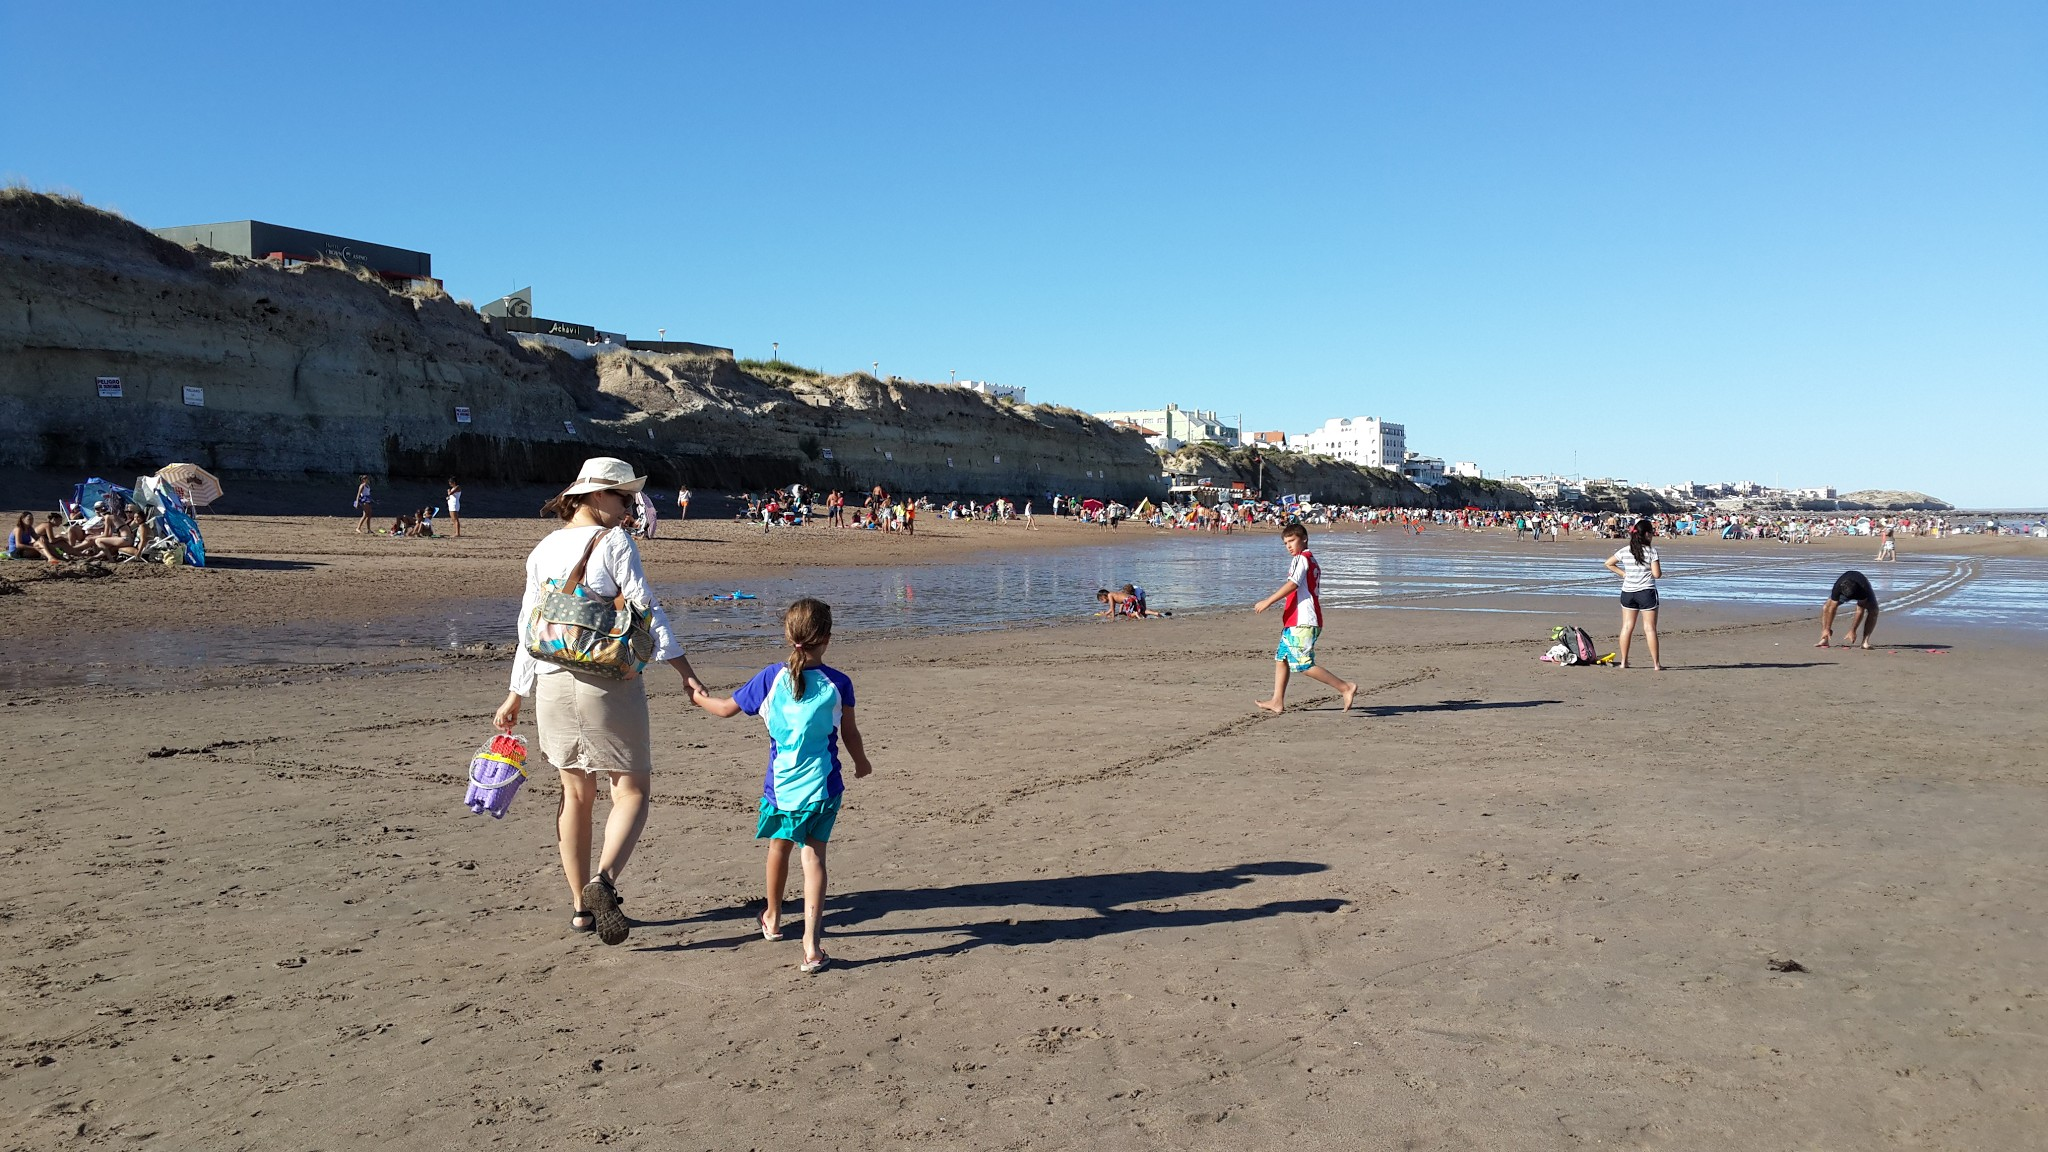 Walking along the beach in Las Grutas during low tide.